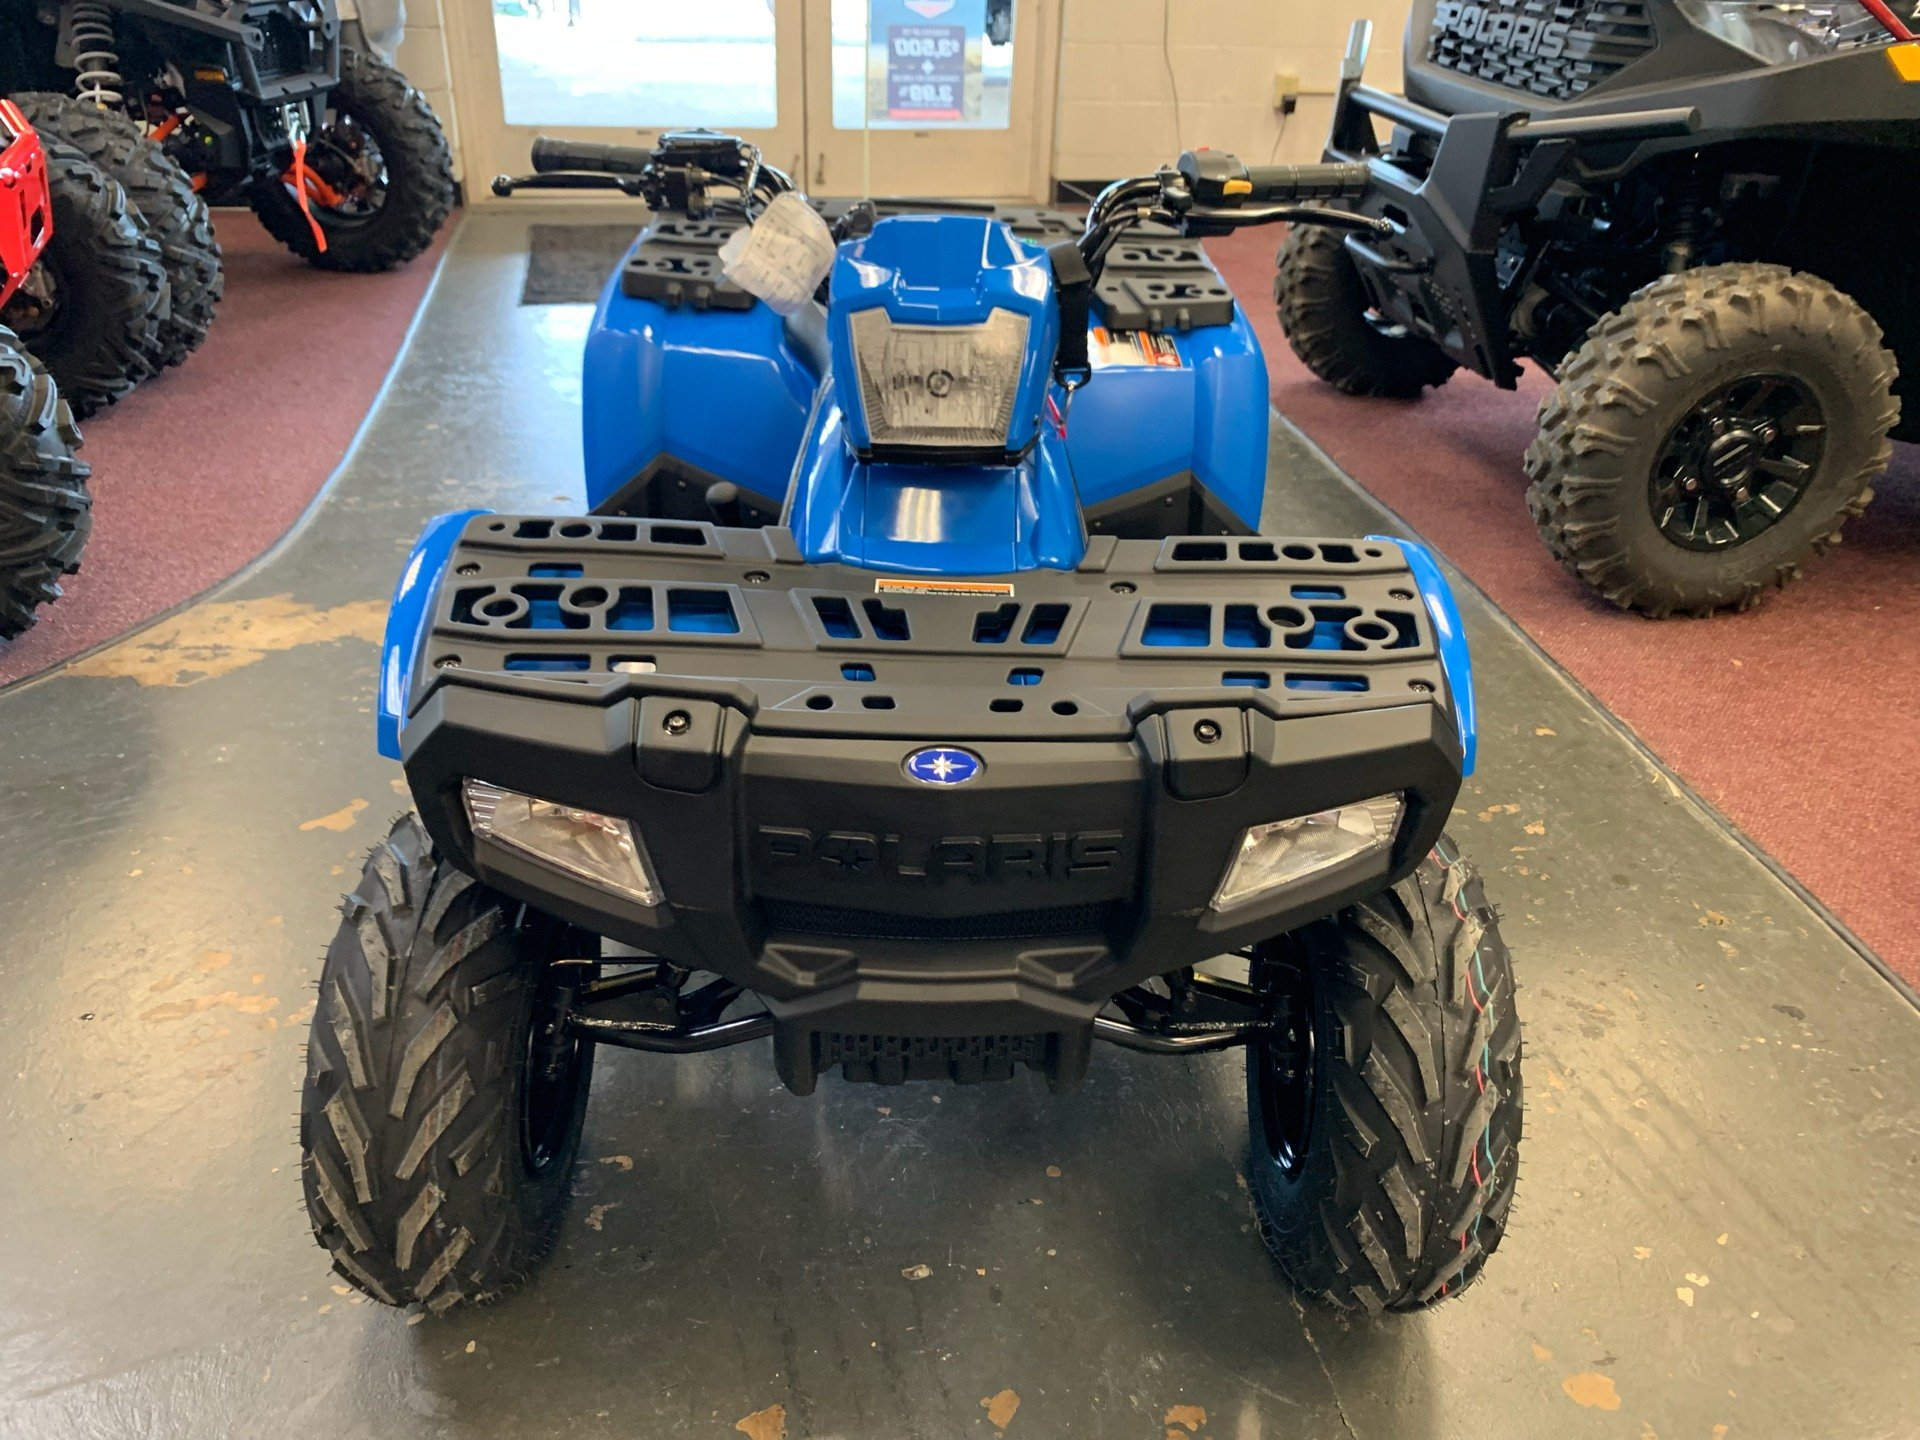 2019 Polaris Sportsman 110 EFI in Petersburg, West Virginia - Photo 3